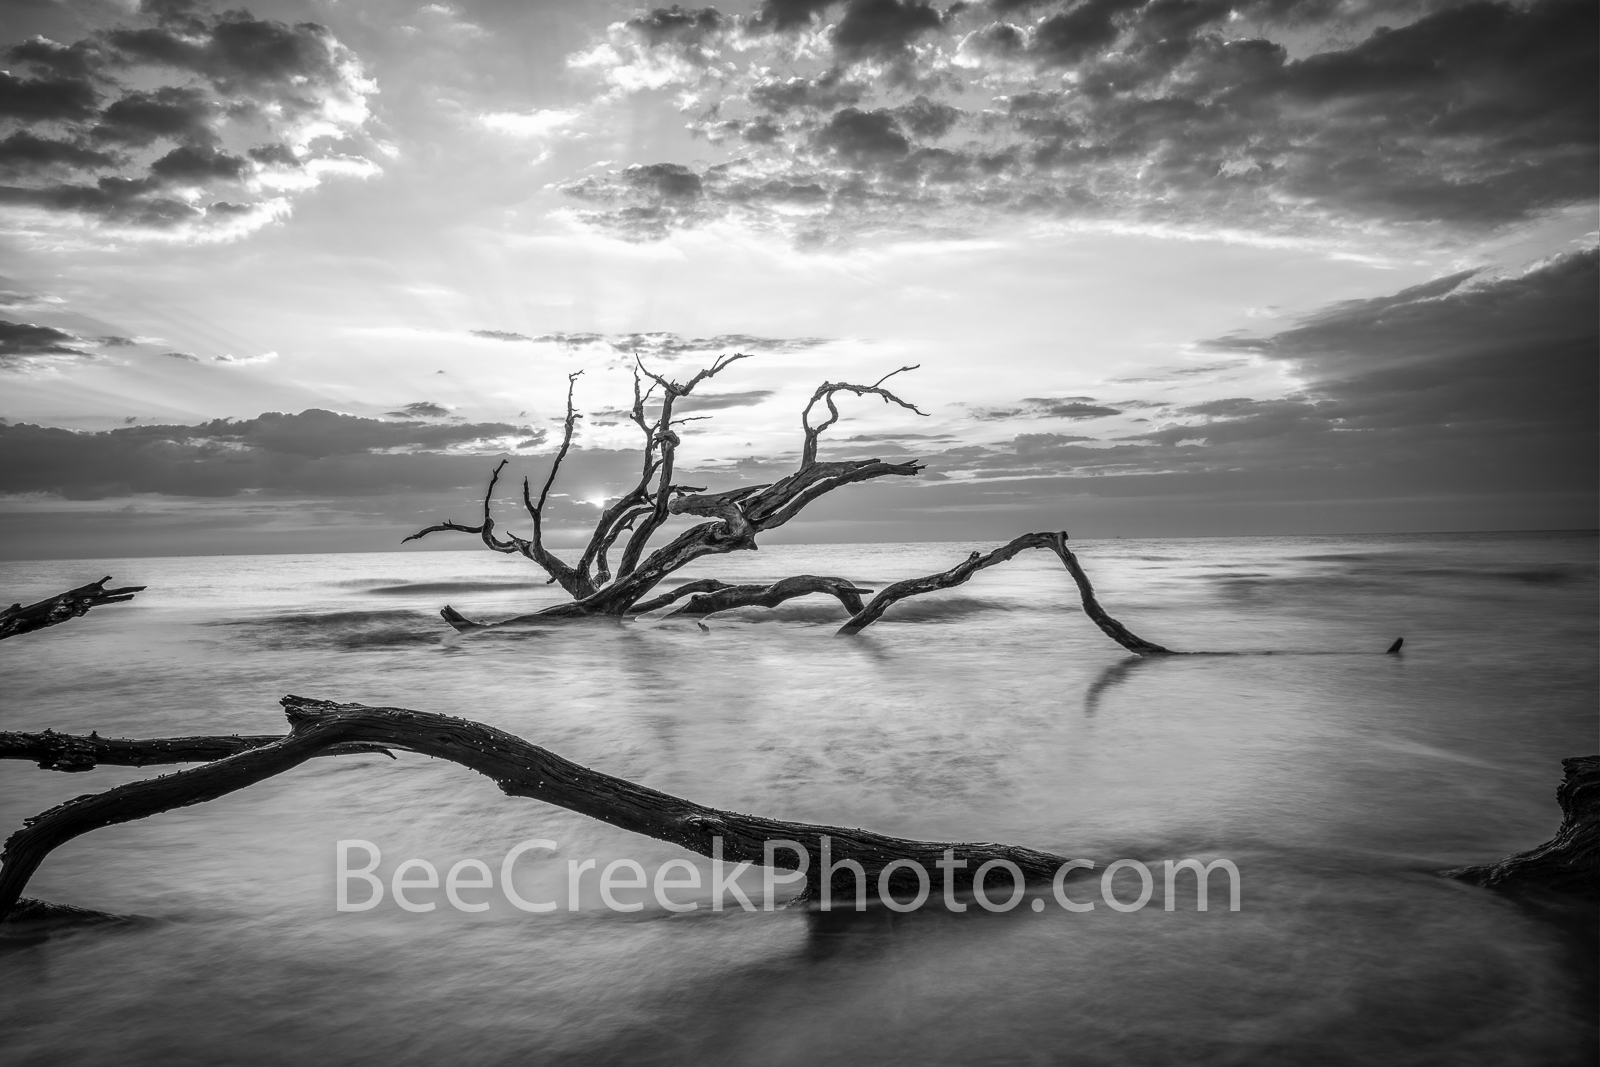 jekyll island, driftwood beach, driftwood beach jekyll island, jekyll island ga, boneyard beach, black and white, b w, sunrise, alantic ocean, deadwood, east coast, reflections, reflecting, clouds,  s, photo